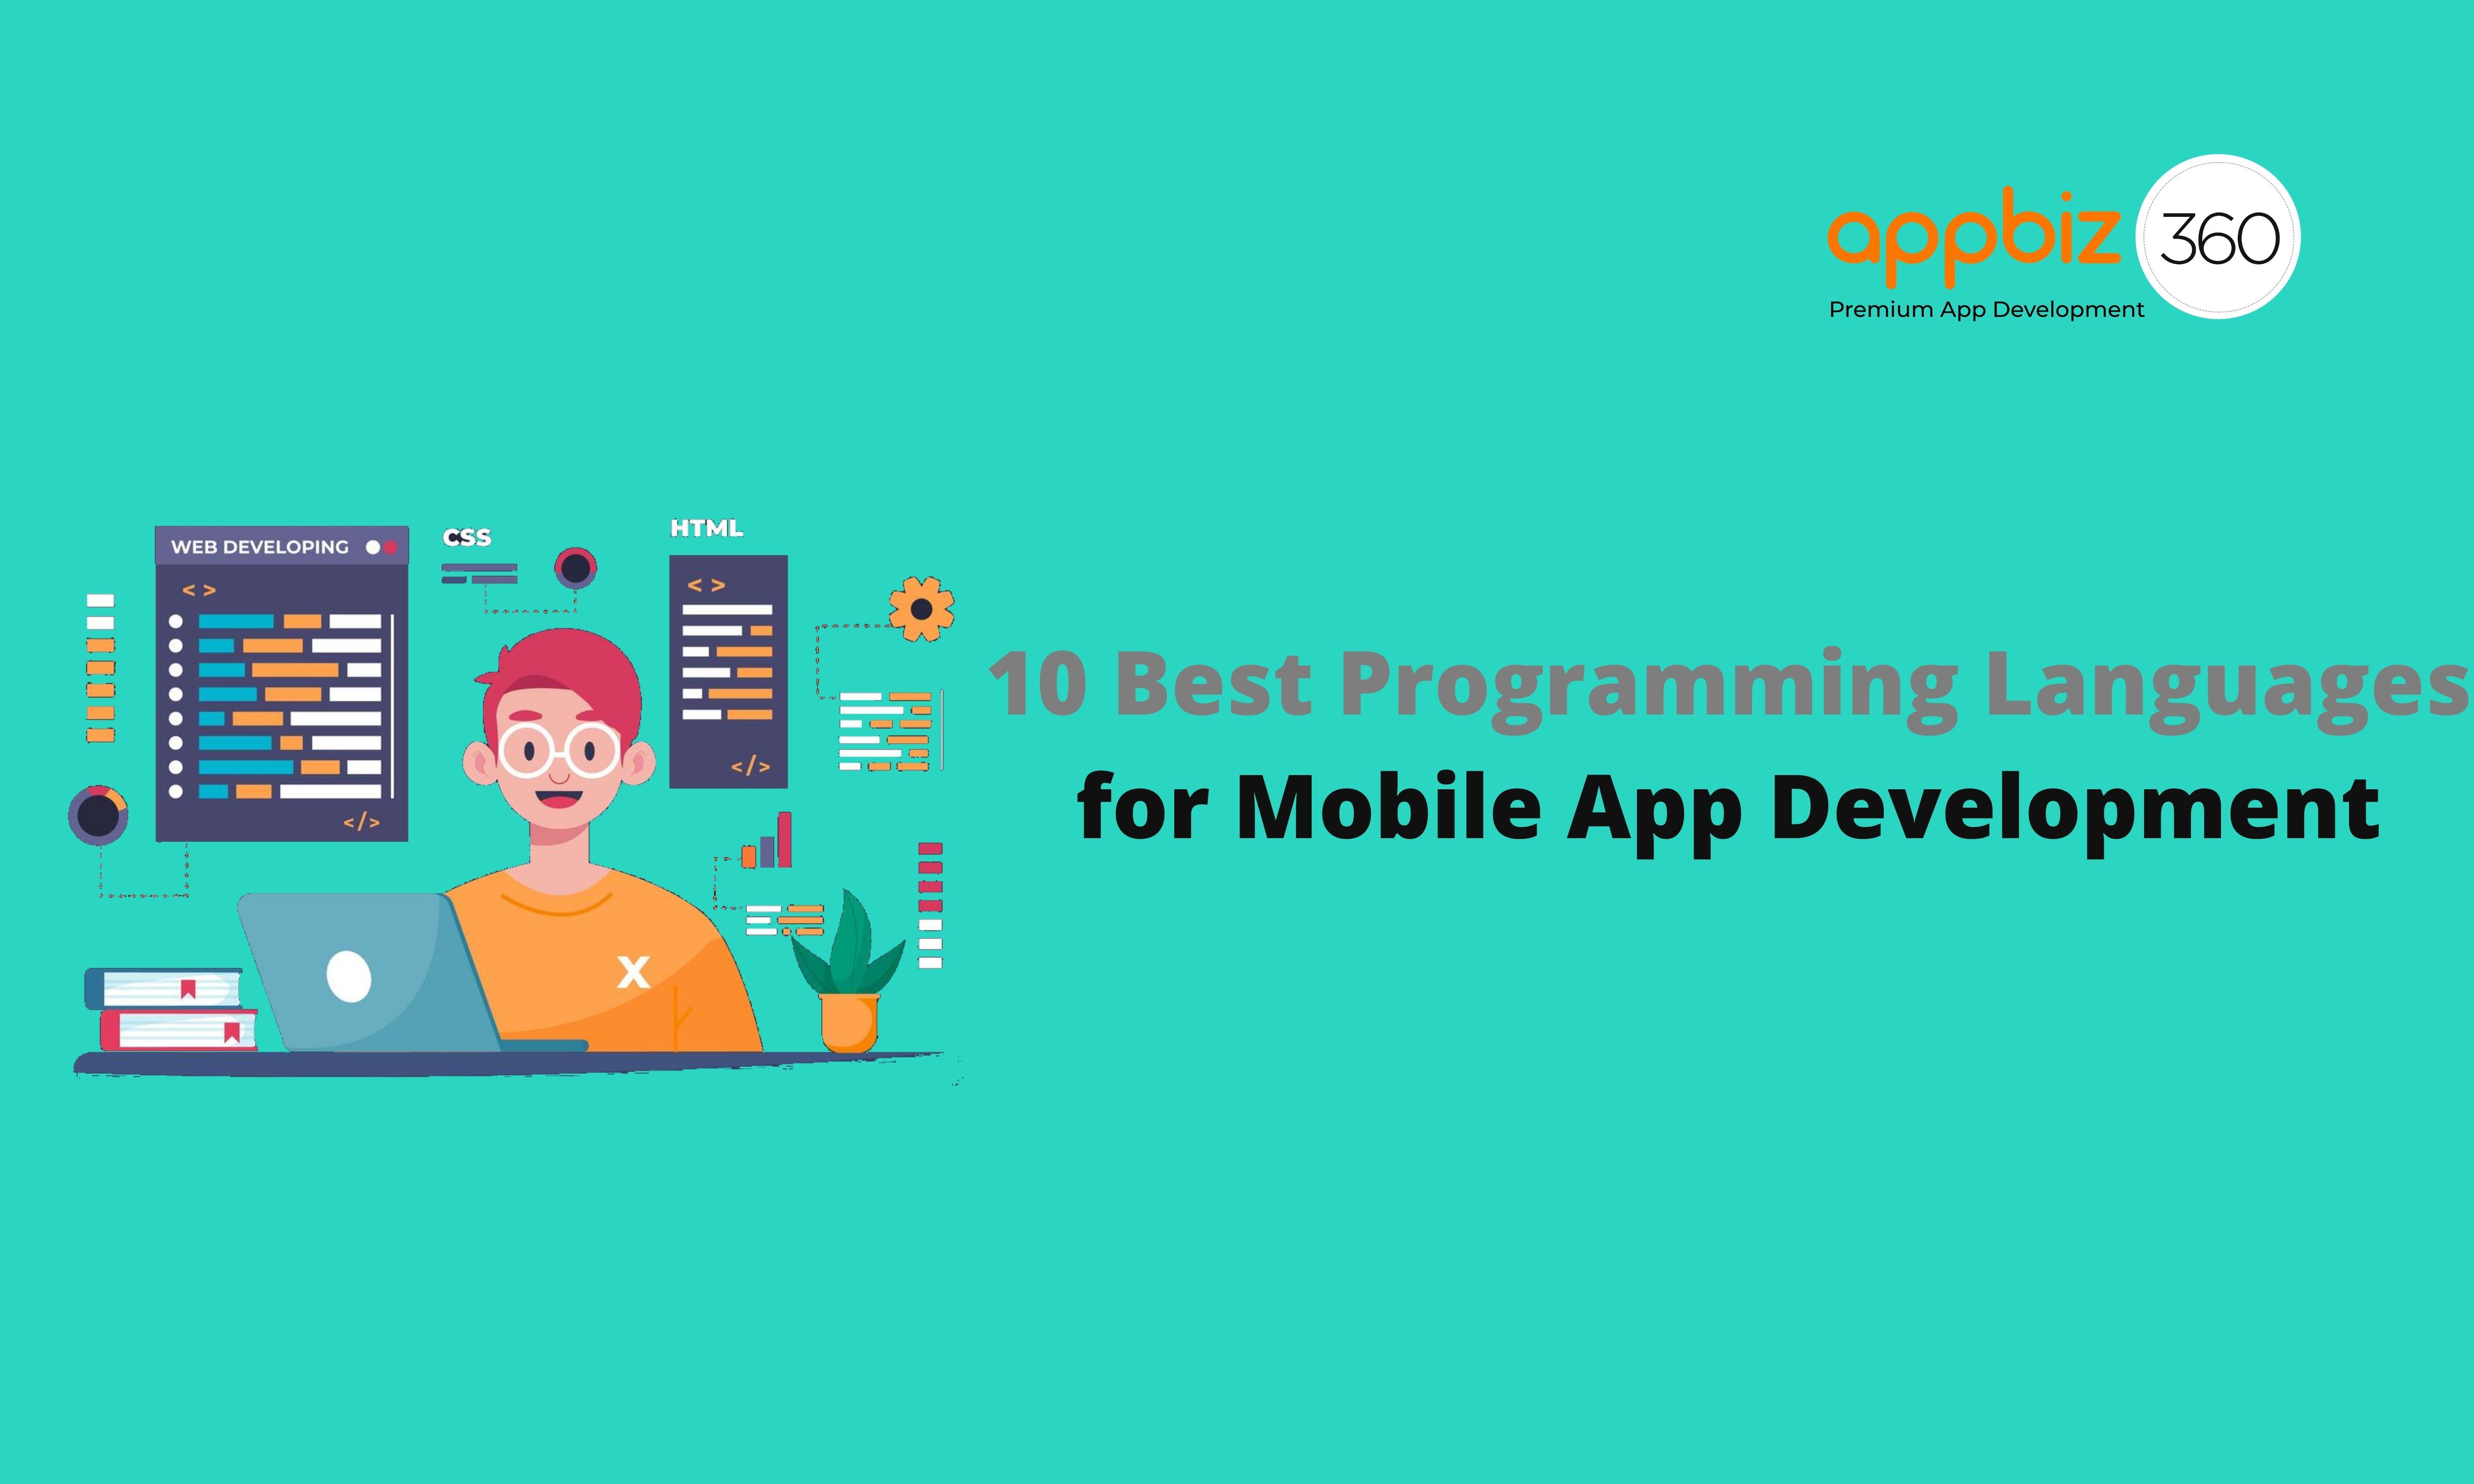 10 Best Programming Languages for Mobile App Development